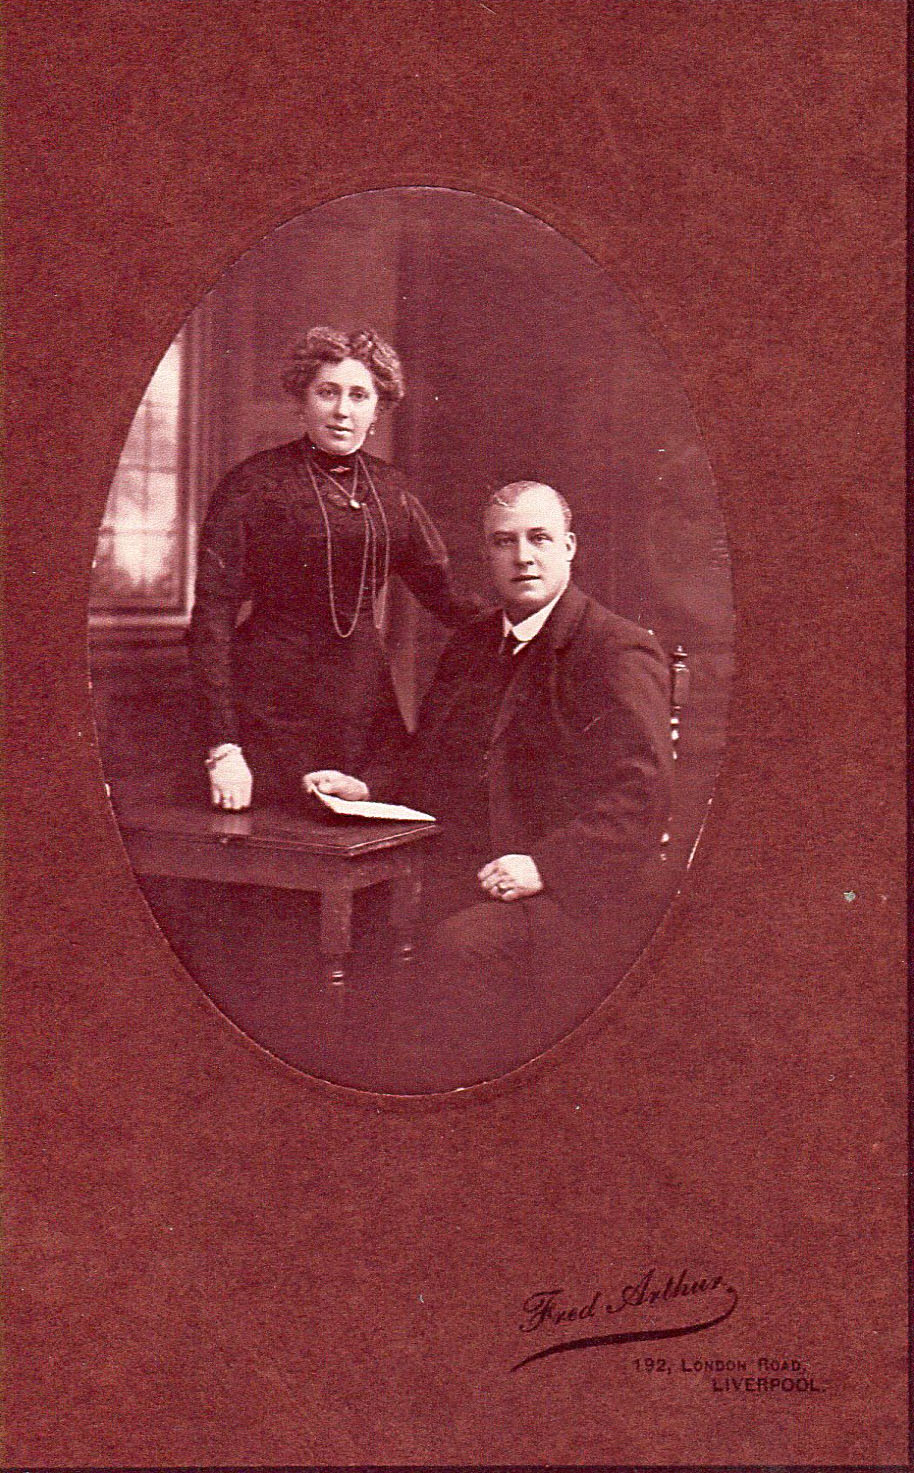 Watkins FH - 32a - Charles Henry Cutler & Sarah Bowyer